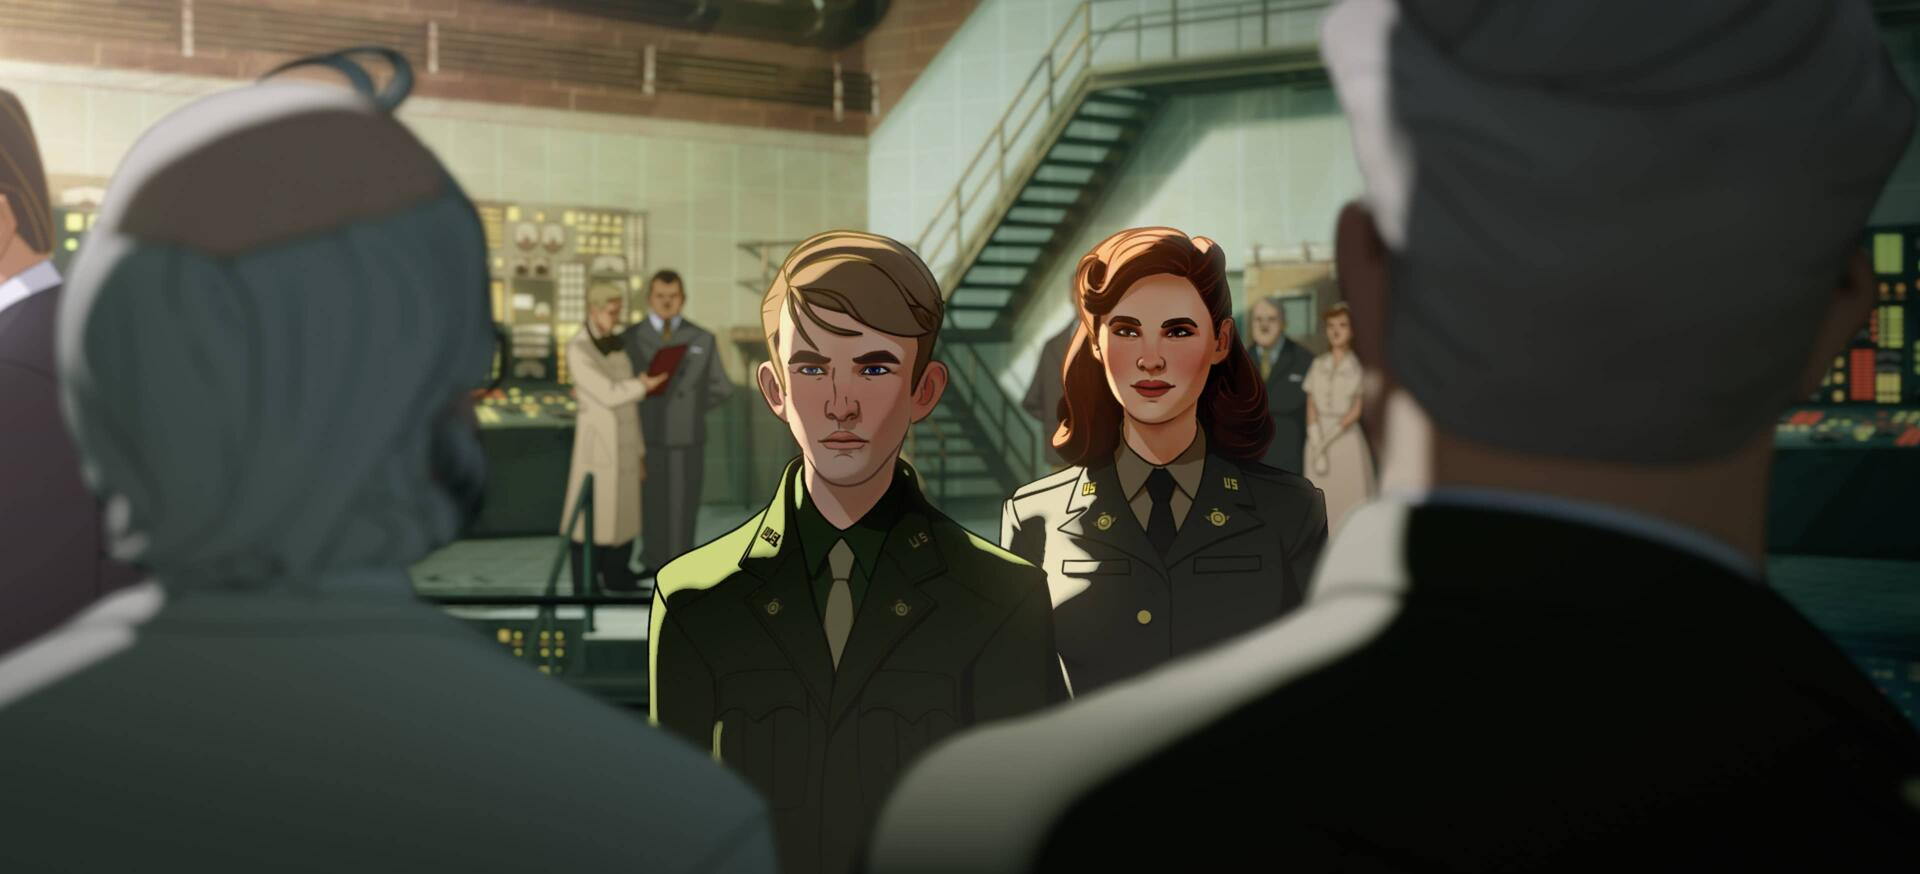 Steve Rogers and Peggy Carter | What If...?